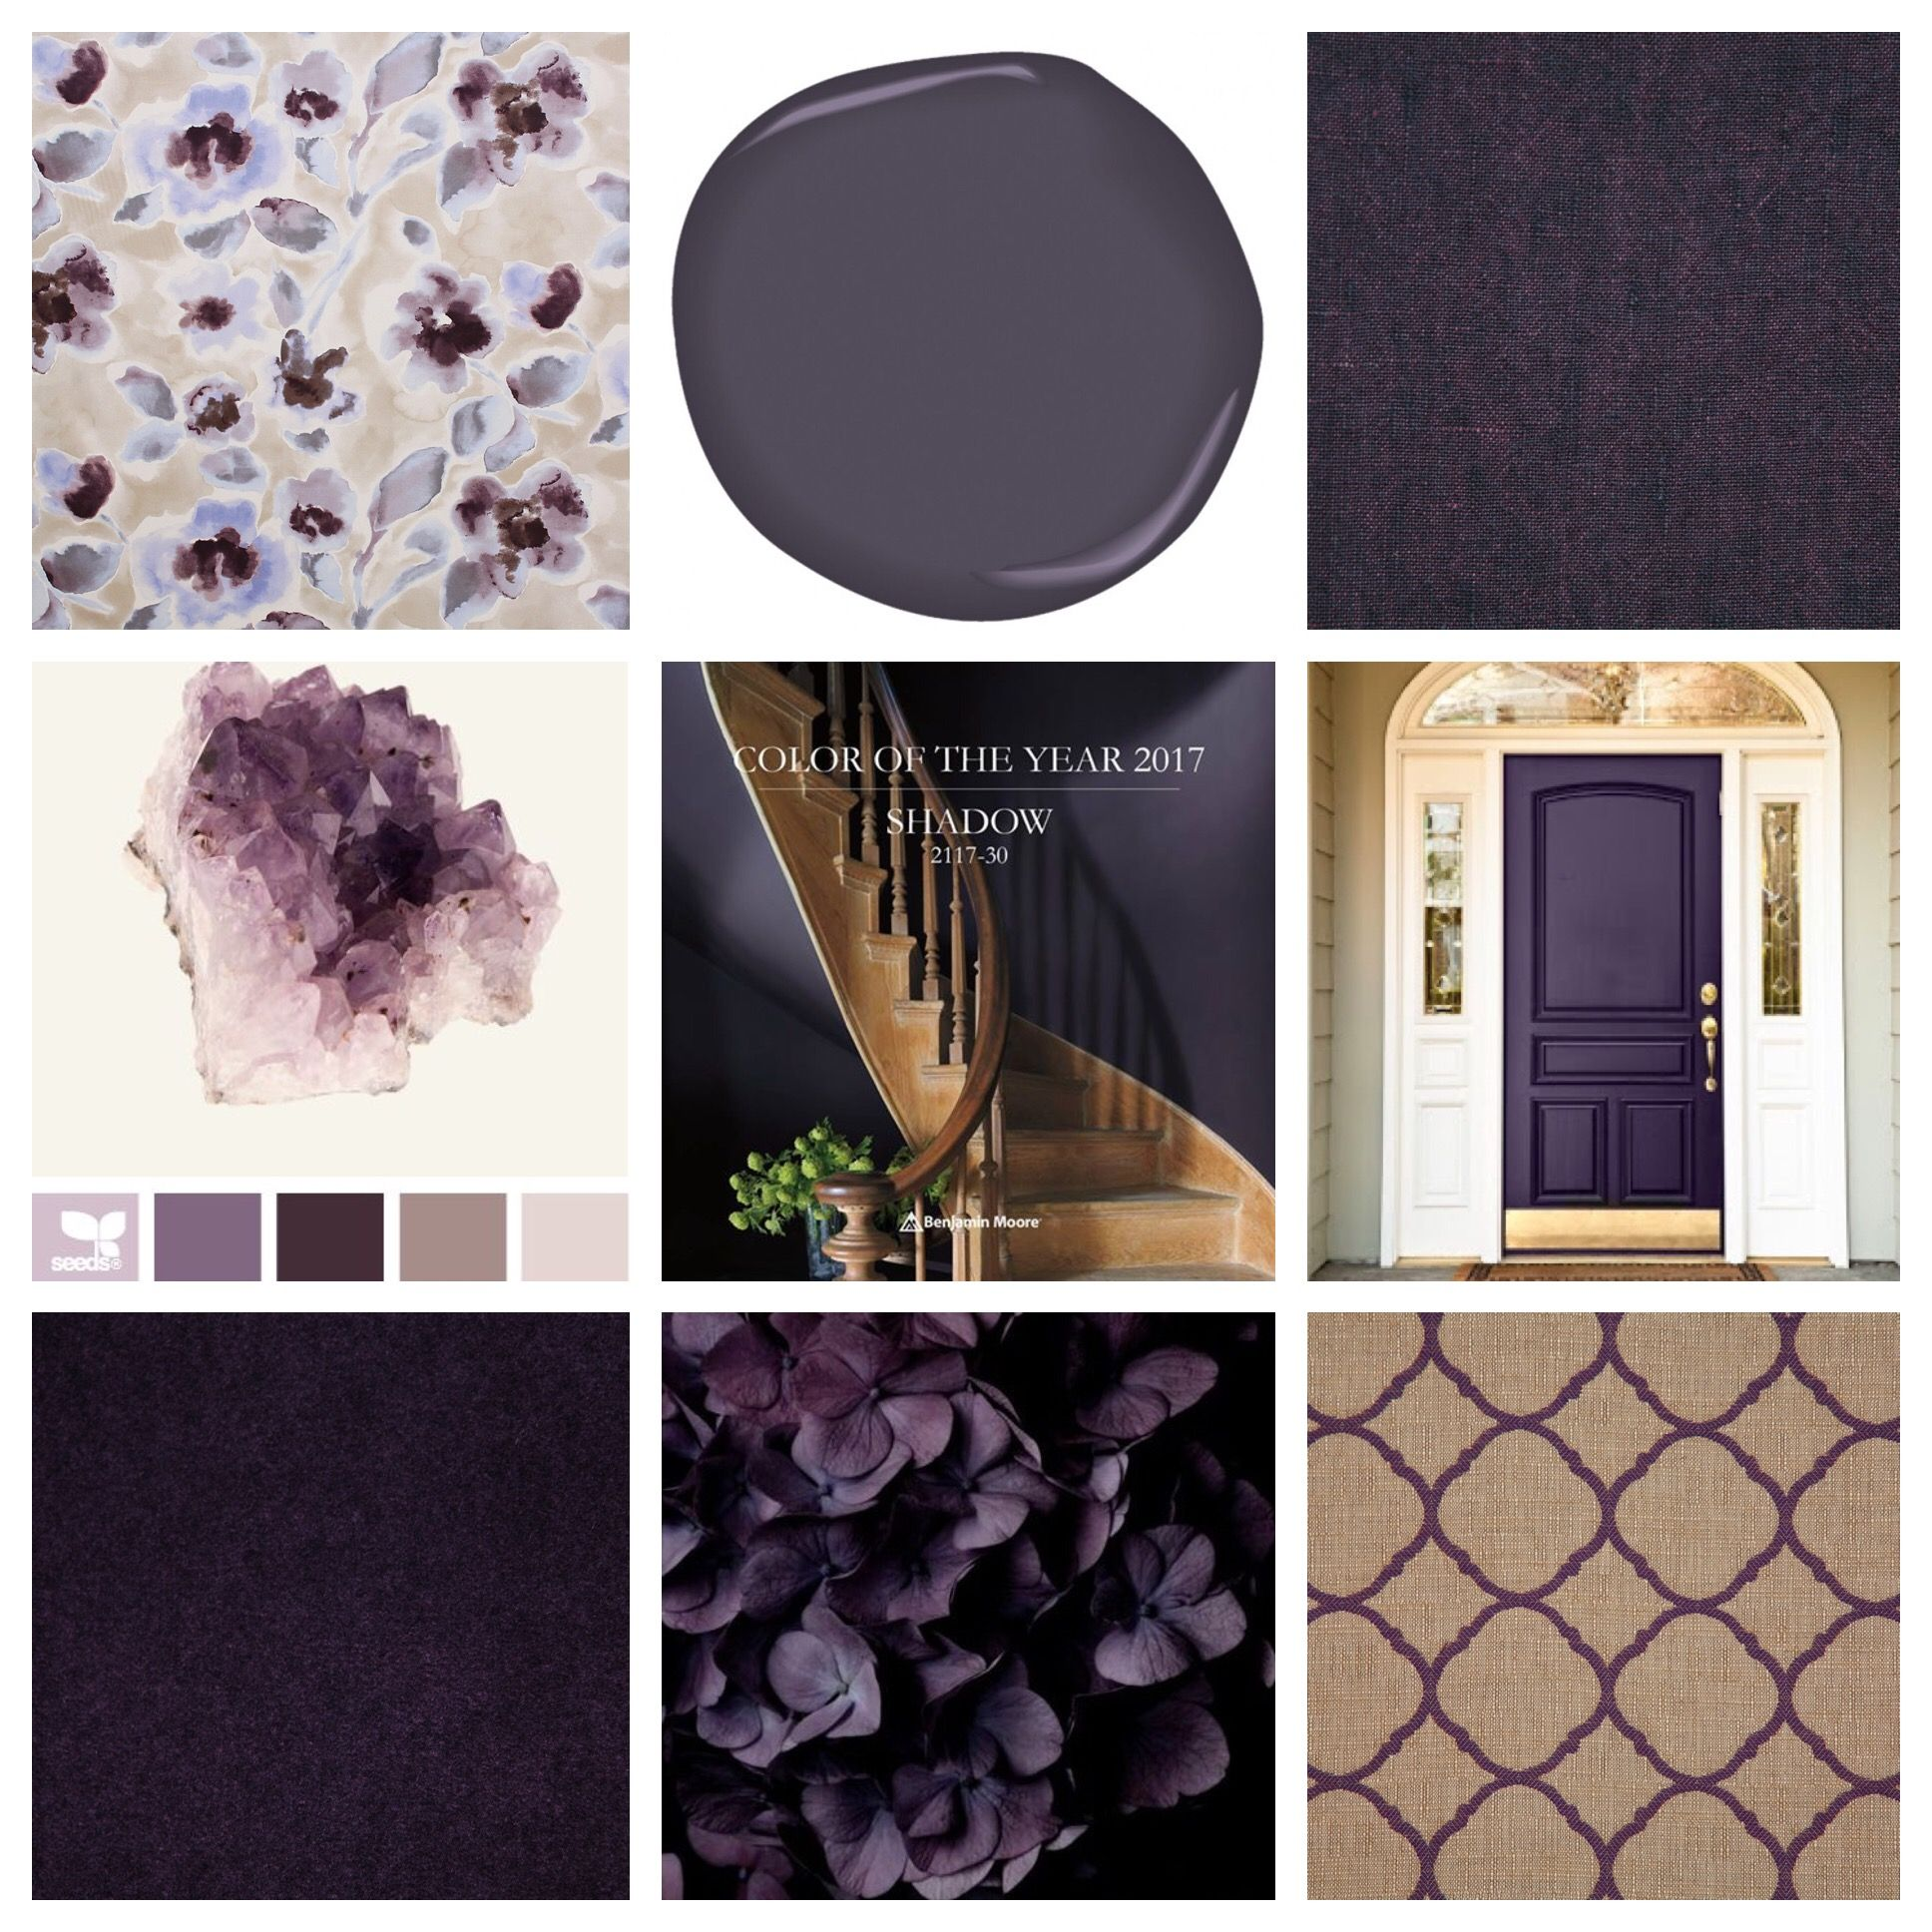 My house wednesday inspiration benjamin moore quot gentleman s gray - In Case You Haven T Already Seen Benjamin Moore Announced Their Color For 2017